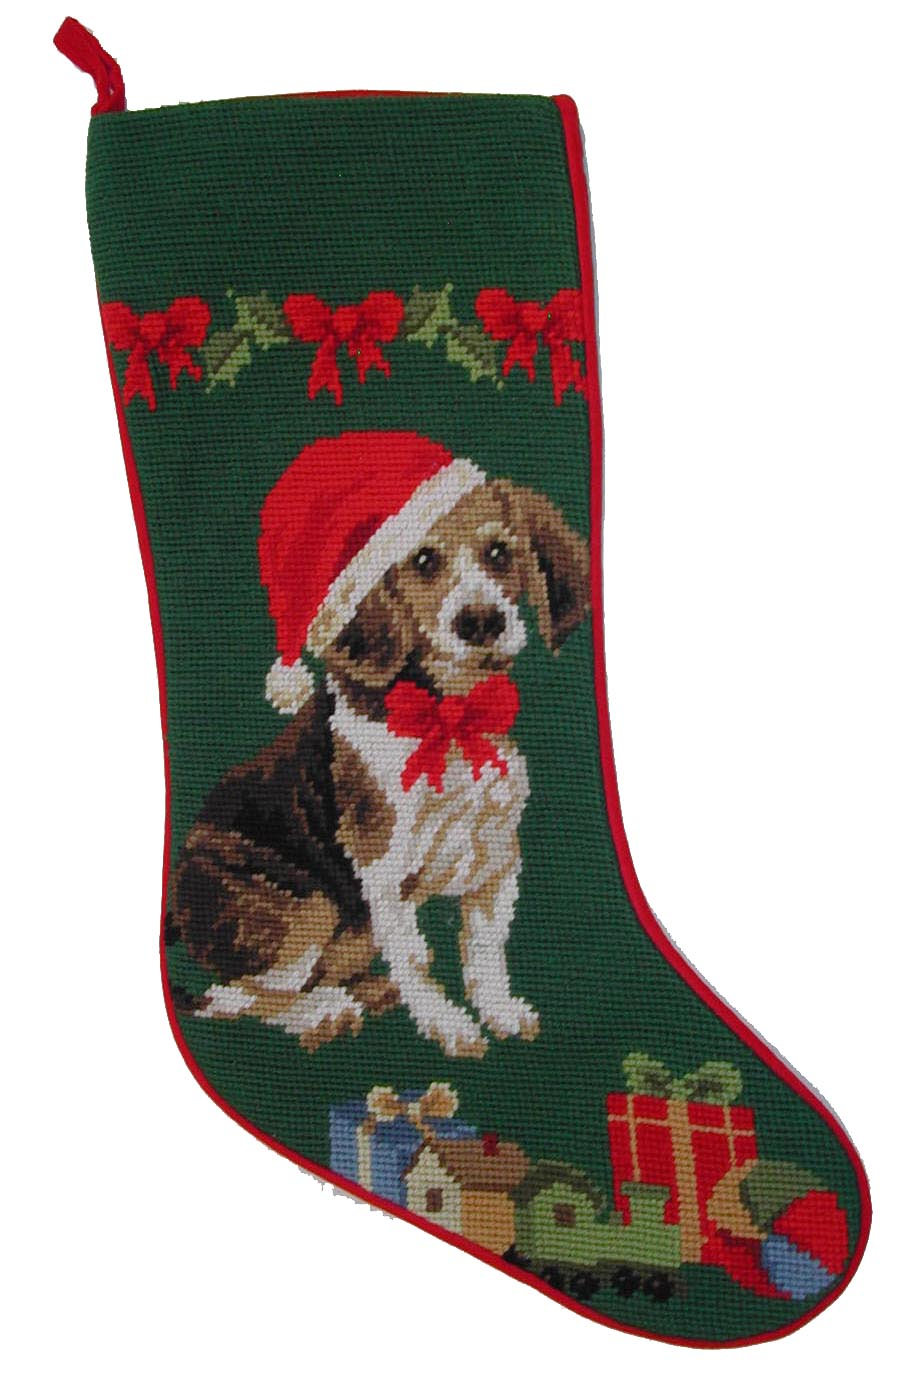 Needlepoint Christmas Dog Breed Stocking -Beagle with Santa Hat - A Pet's World